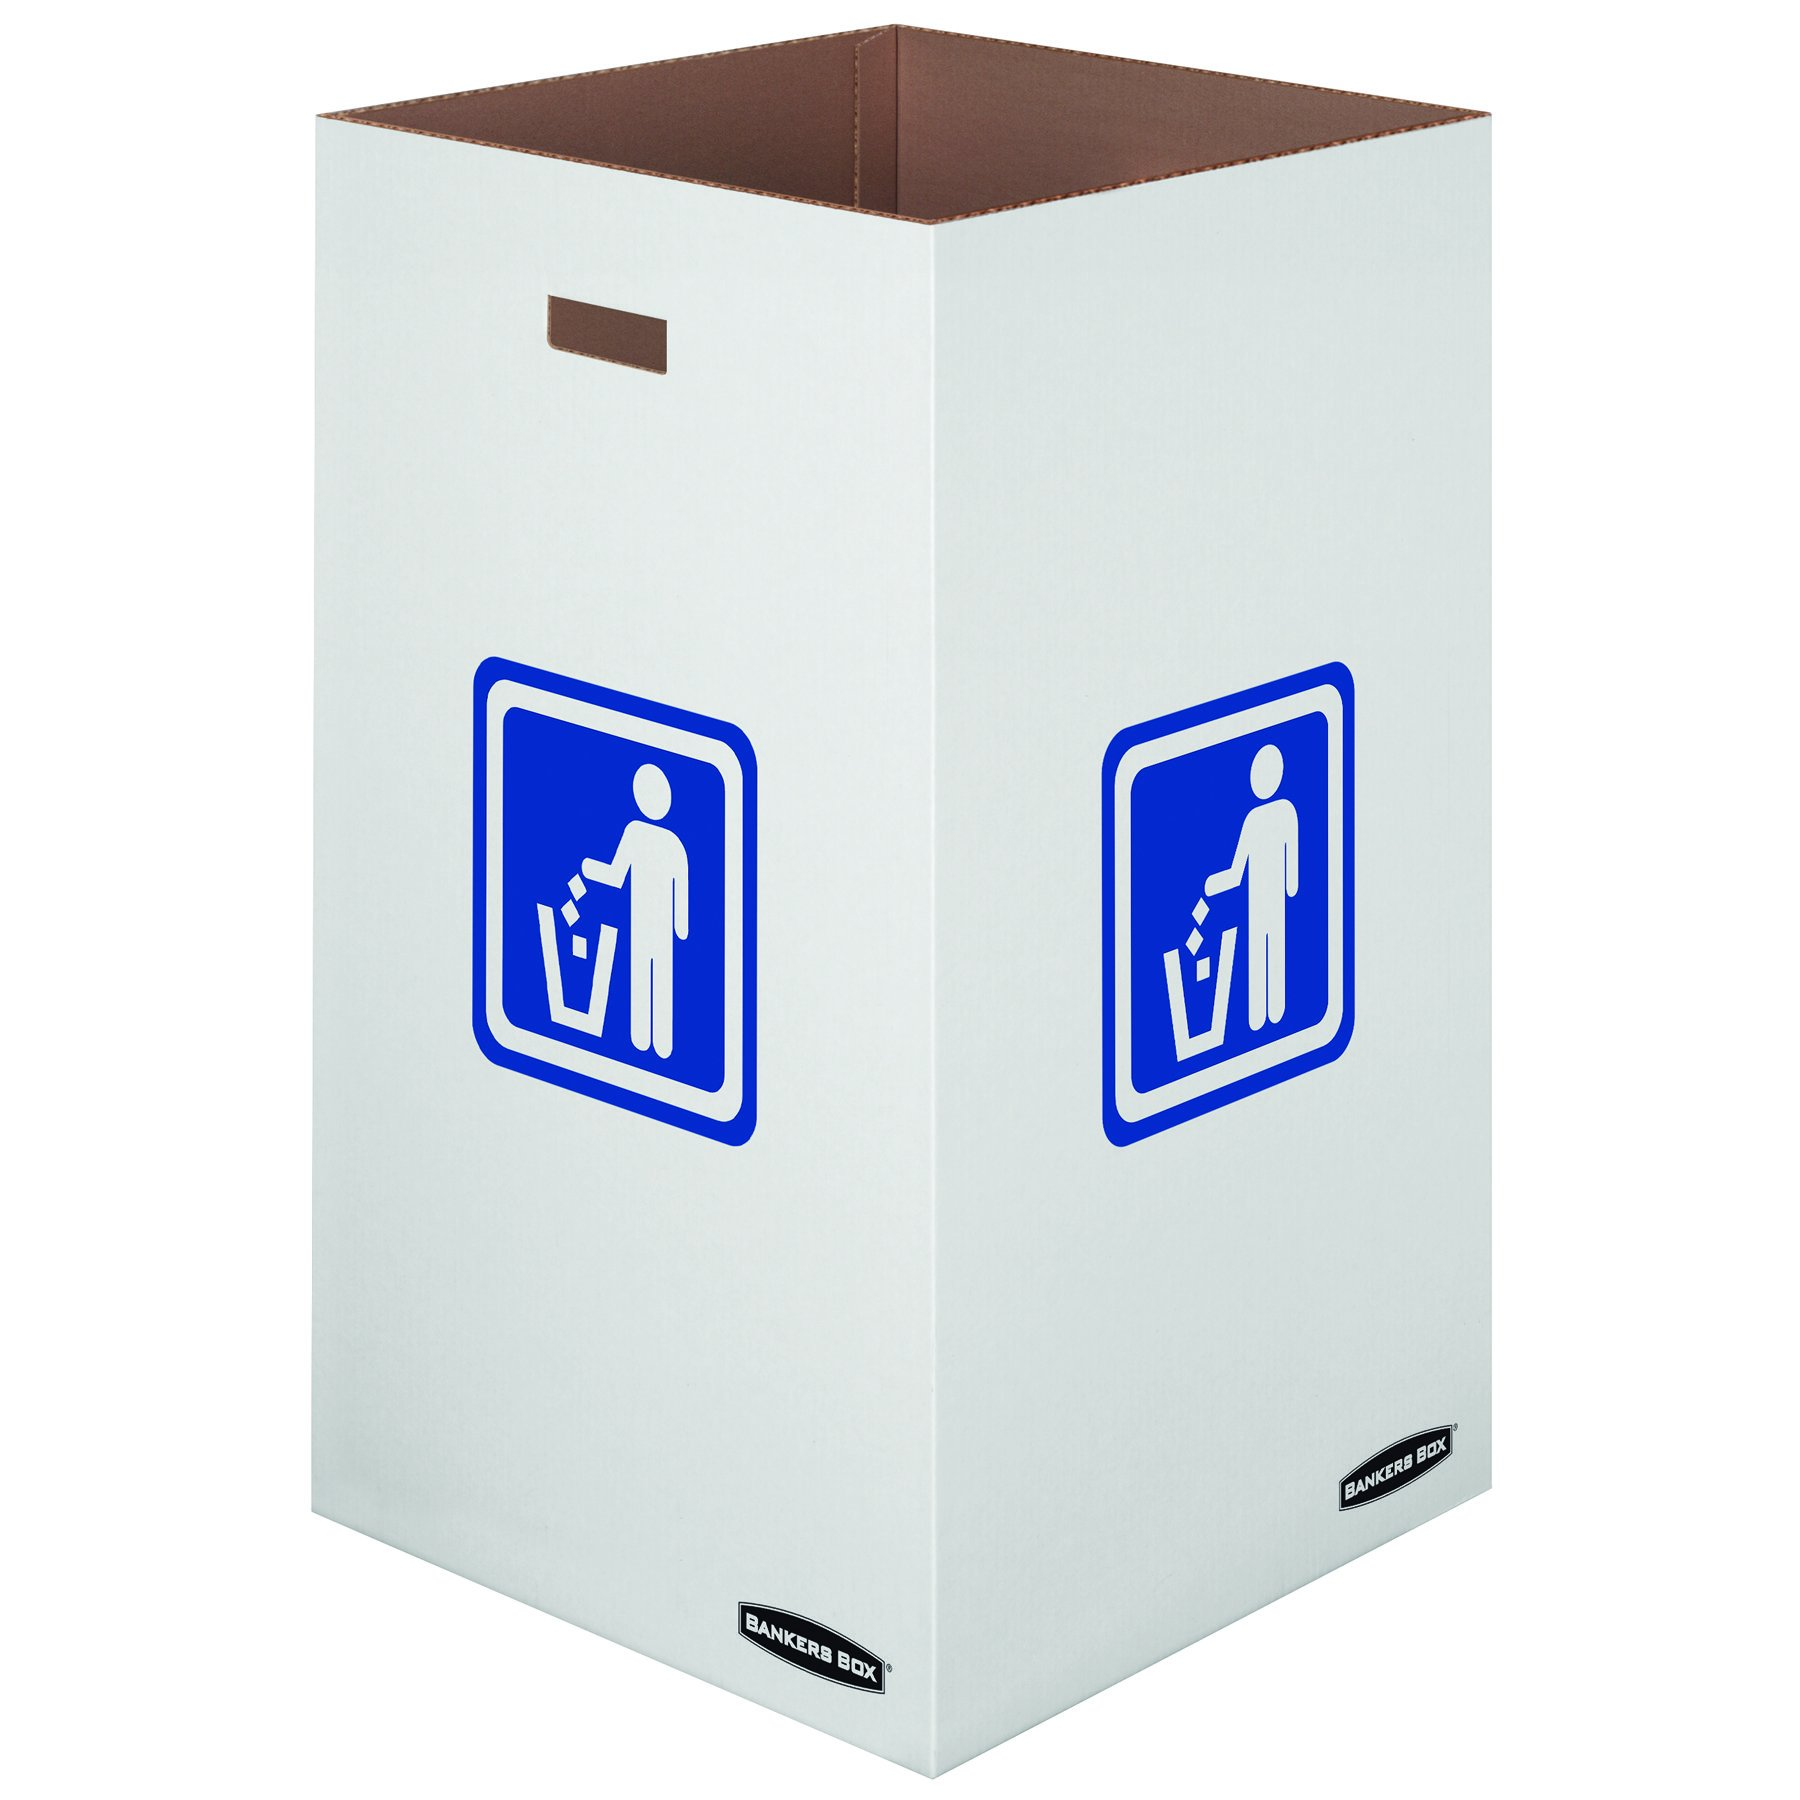 Bankers Box Medium Corrugated Cardboard Trash and Recycling Containers, 42 Gallon, 10 Each (7320101)